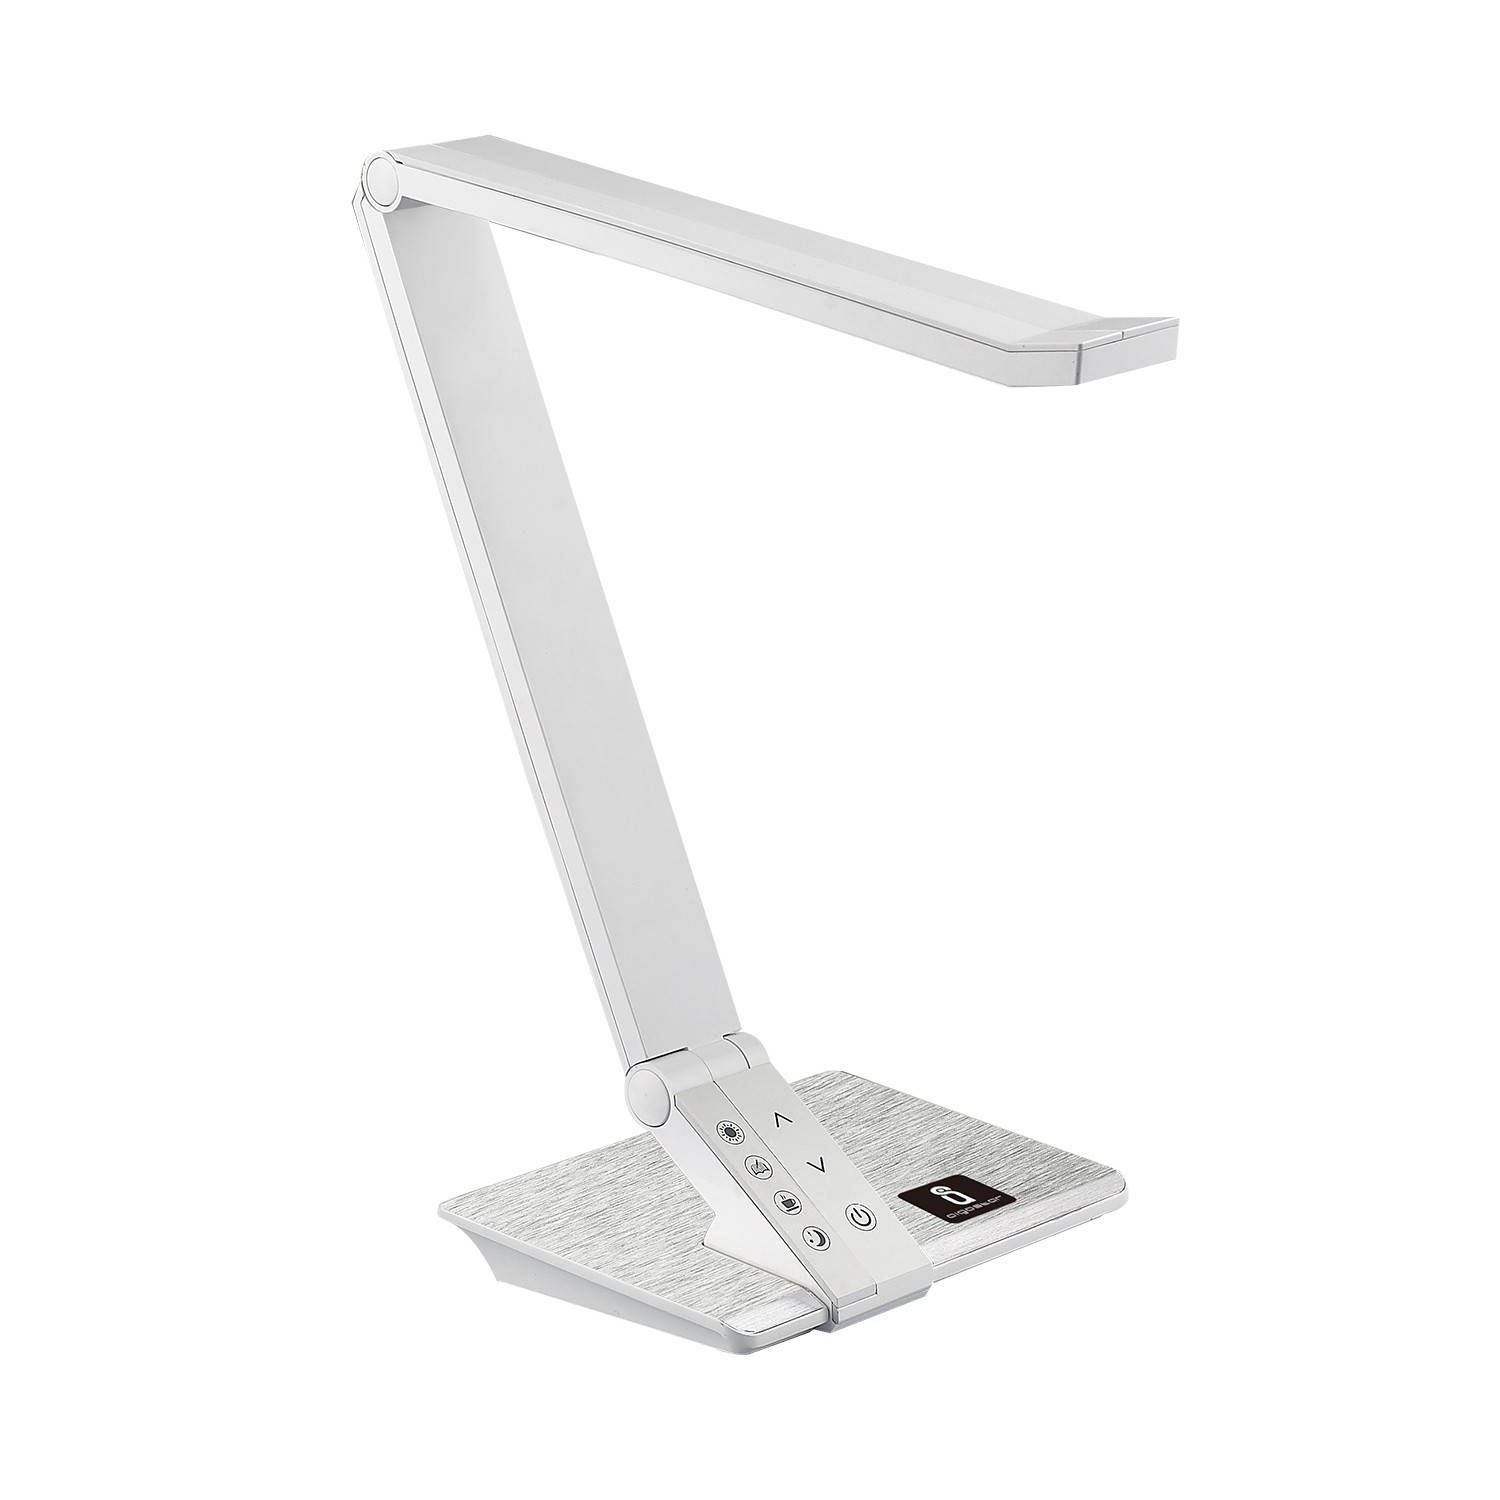 Aigostar Galaxy - LED Bureaulamp - Wit